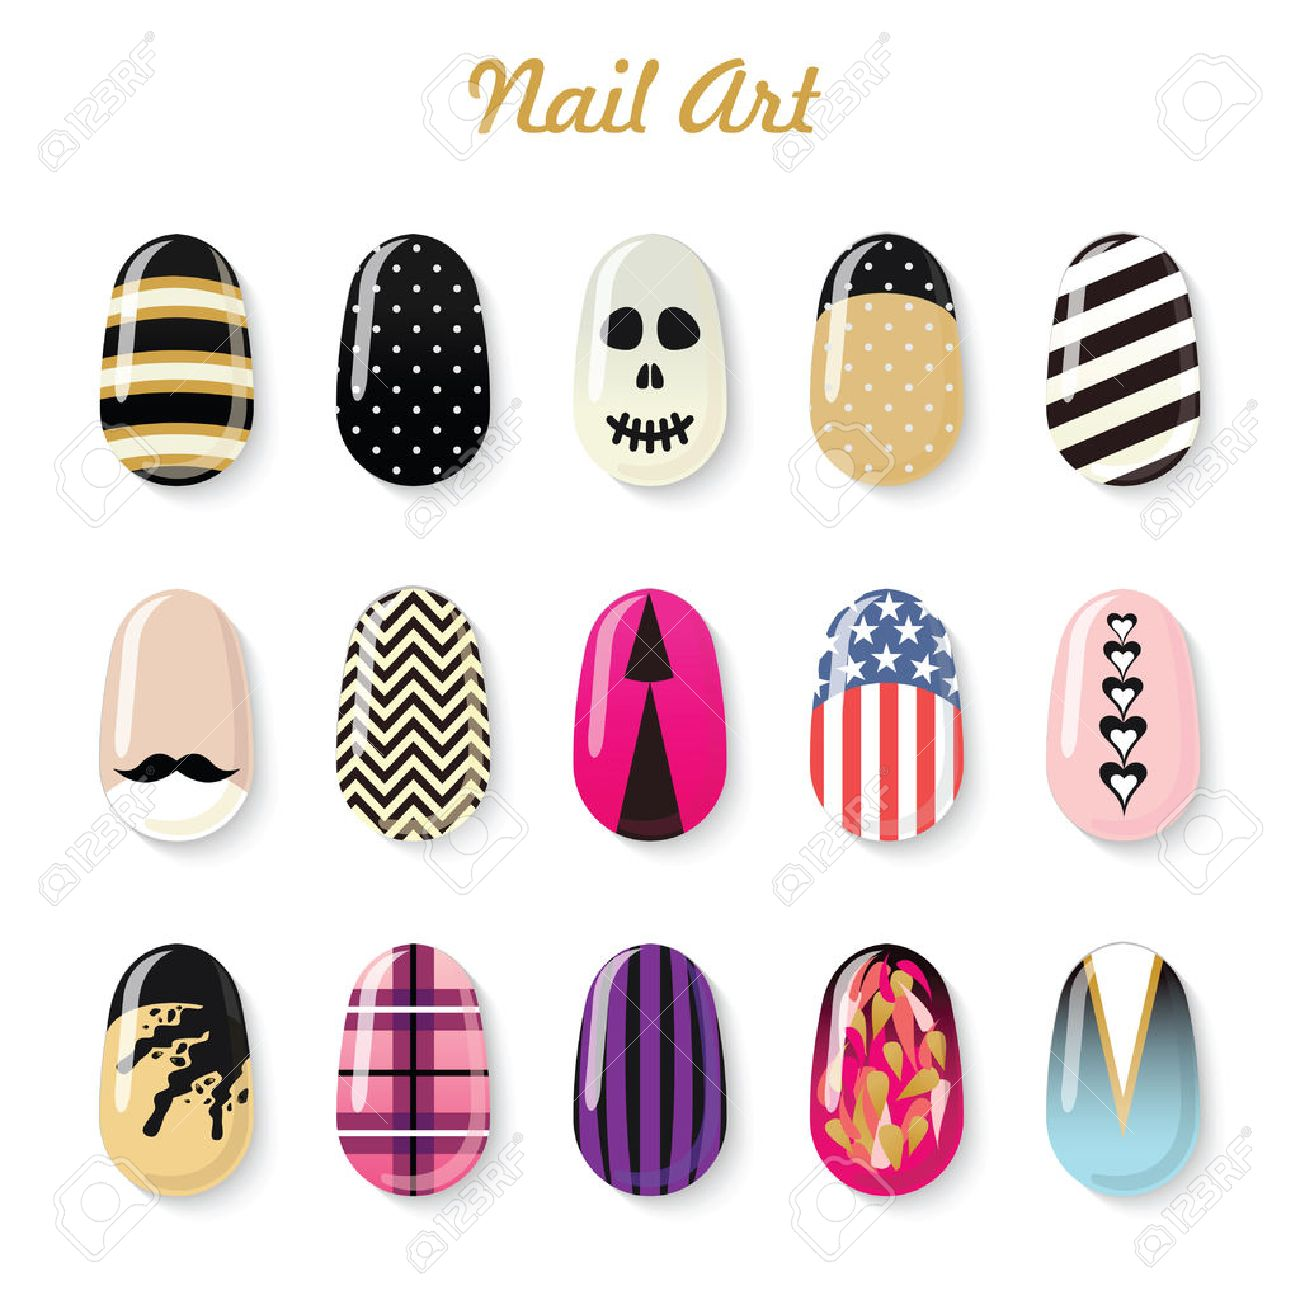 Nails Art Vector Templates And Polish Bottle For Manicure Salon